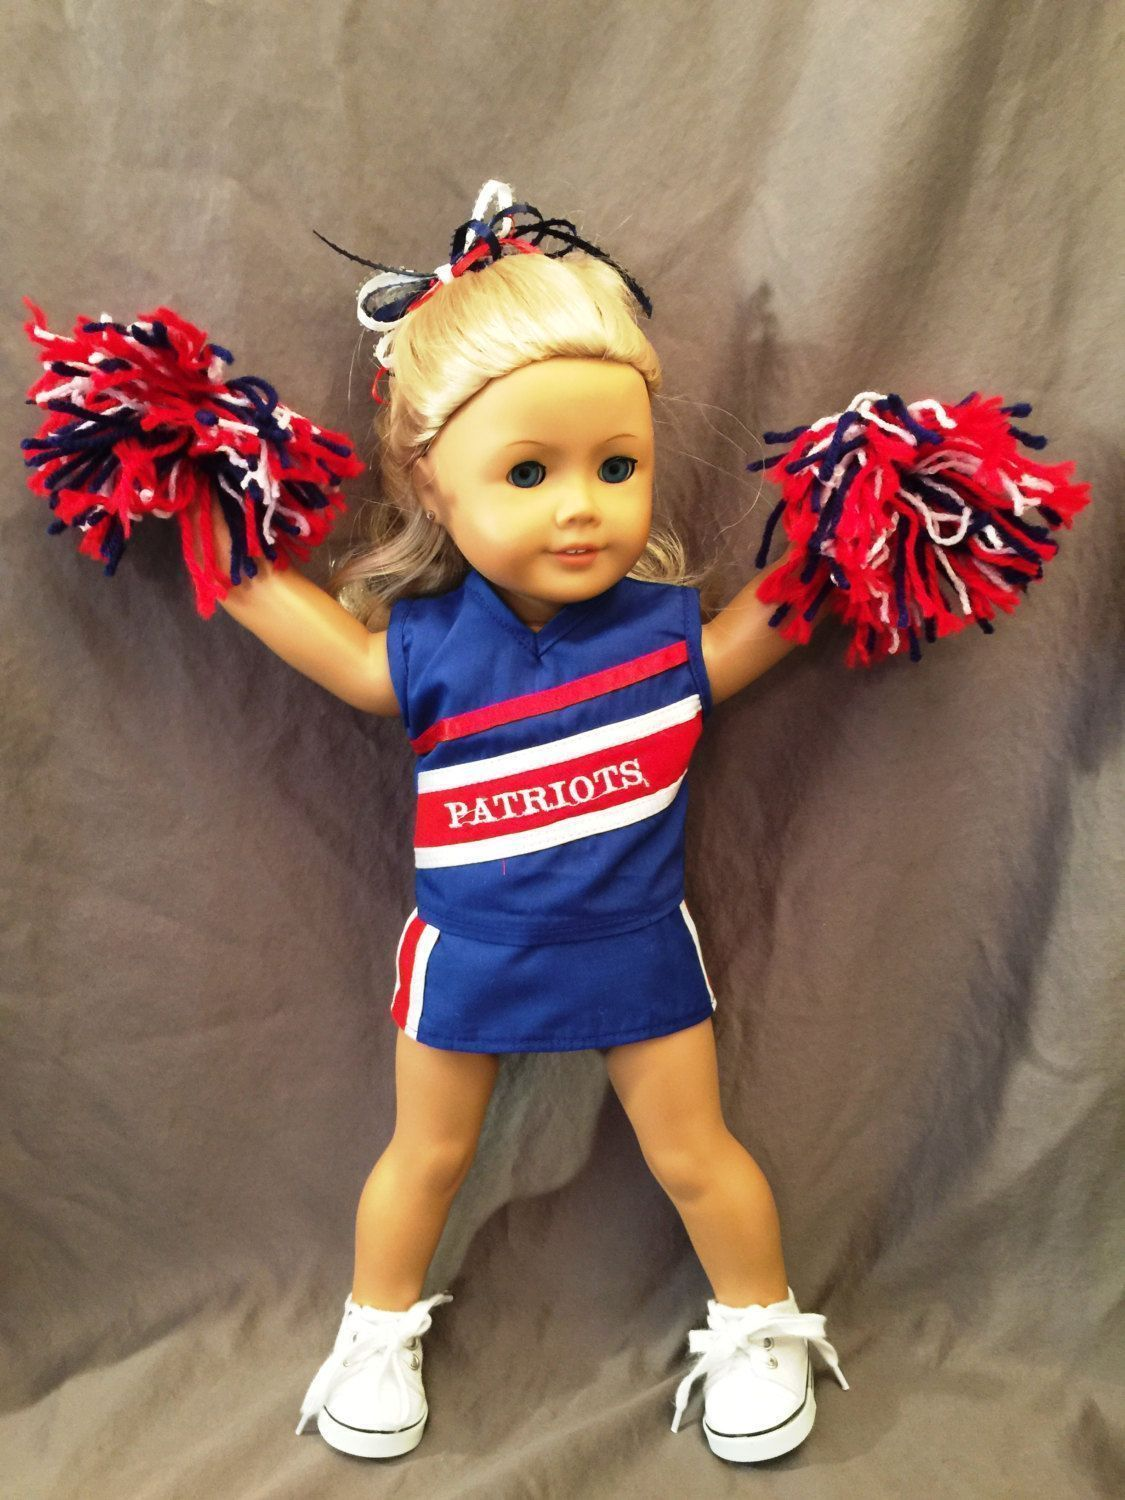 Homemade PATRIOTS Cheer Leading Outfit For 18 Inch Dolls Like American Girl Made… #18inchcheerleaderclothes Homemade PATRIOTS Cheer Leading Outfit For 18 Inch Dolls Like American Girl Made… #18inchcheerleaderclothes Homemade PATRIOTS Cheer Leading Outfit For 18 Inch Dolls Like American Girl Made… #18inchcheerleaderclothes Homemade PATRIOTS Cheer Leading Outfit For 18 Inch Dolls Like American Girl Made… #18inchcheerleaderclothes Homemade PATRIOTS Cheer Leading Outfit For 18 Inch Dolls Lik #18inchcheerleaderclothes